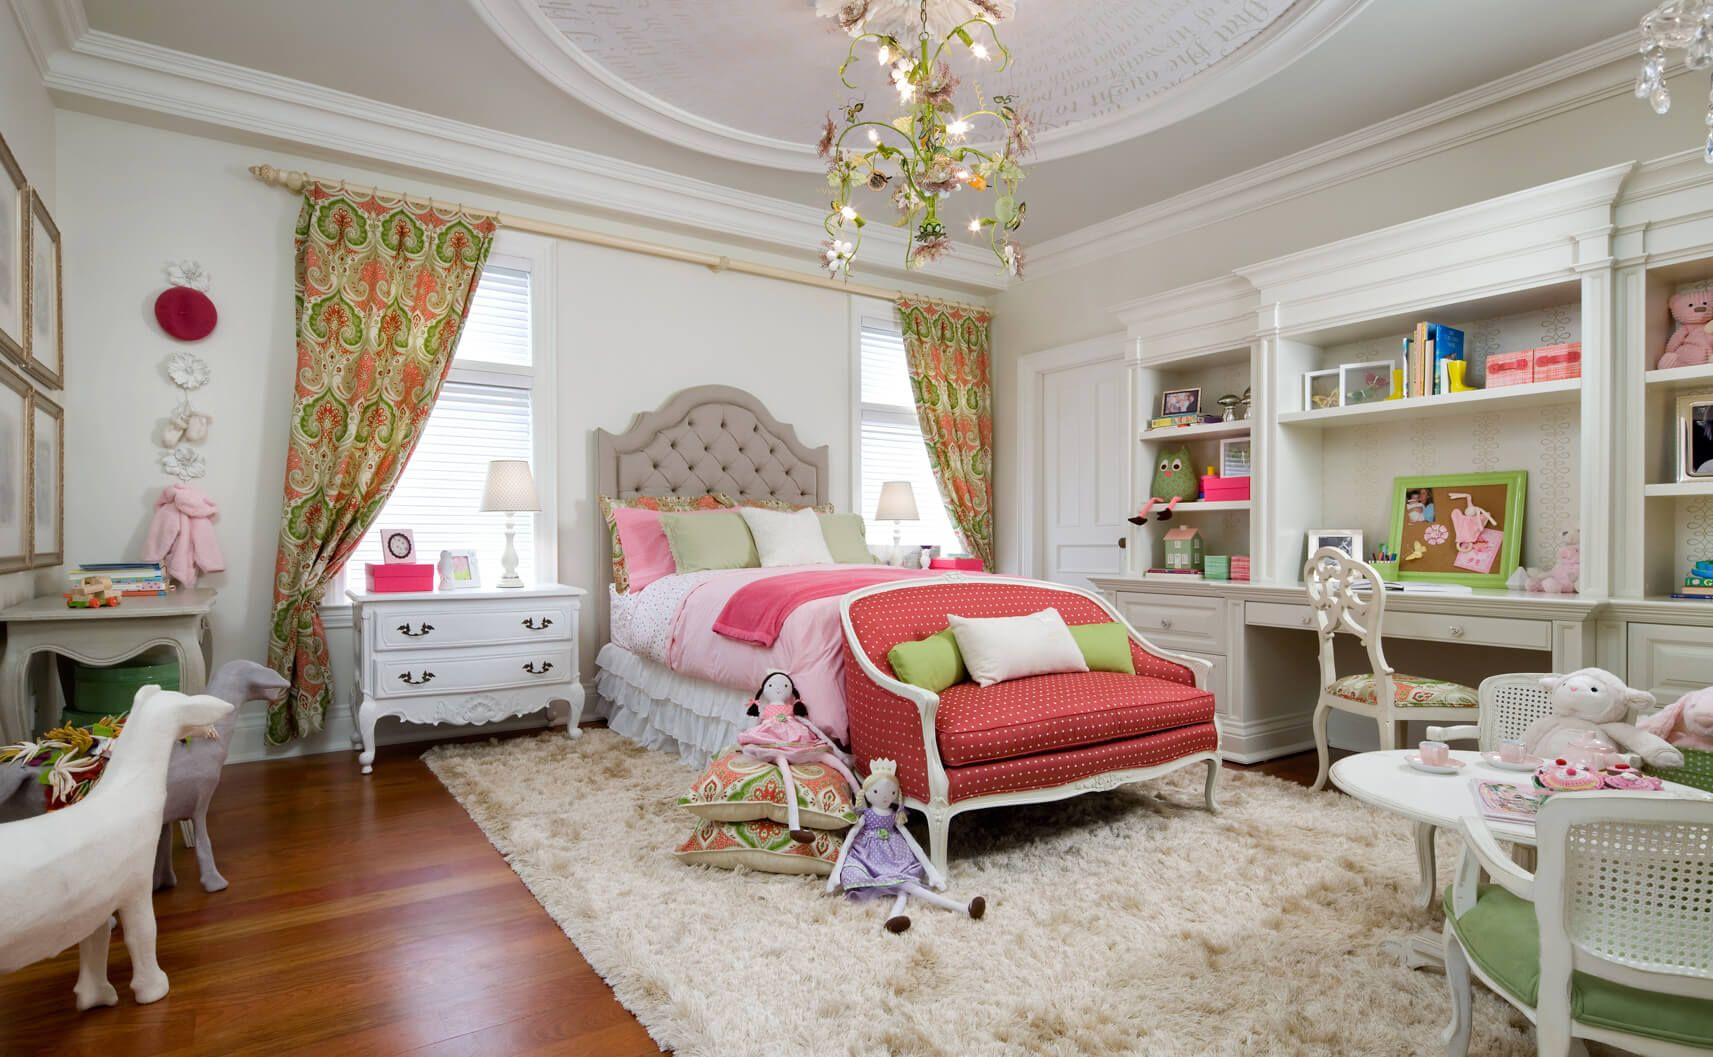 Candice Olson Bedroom Designs Fair Resplendent Little Girl's Roomcandice Olson Design And Brandon Decorating Inspiration